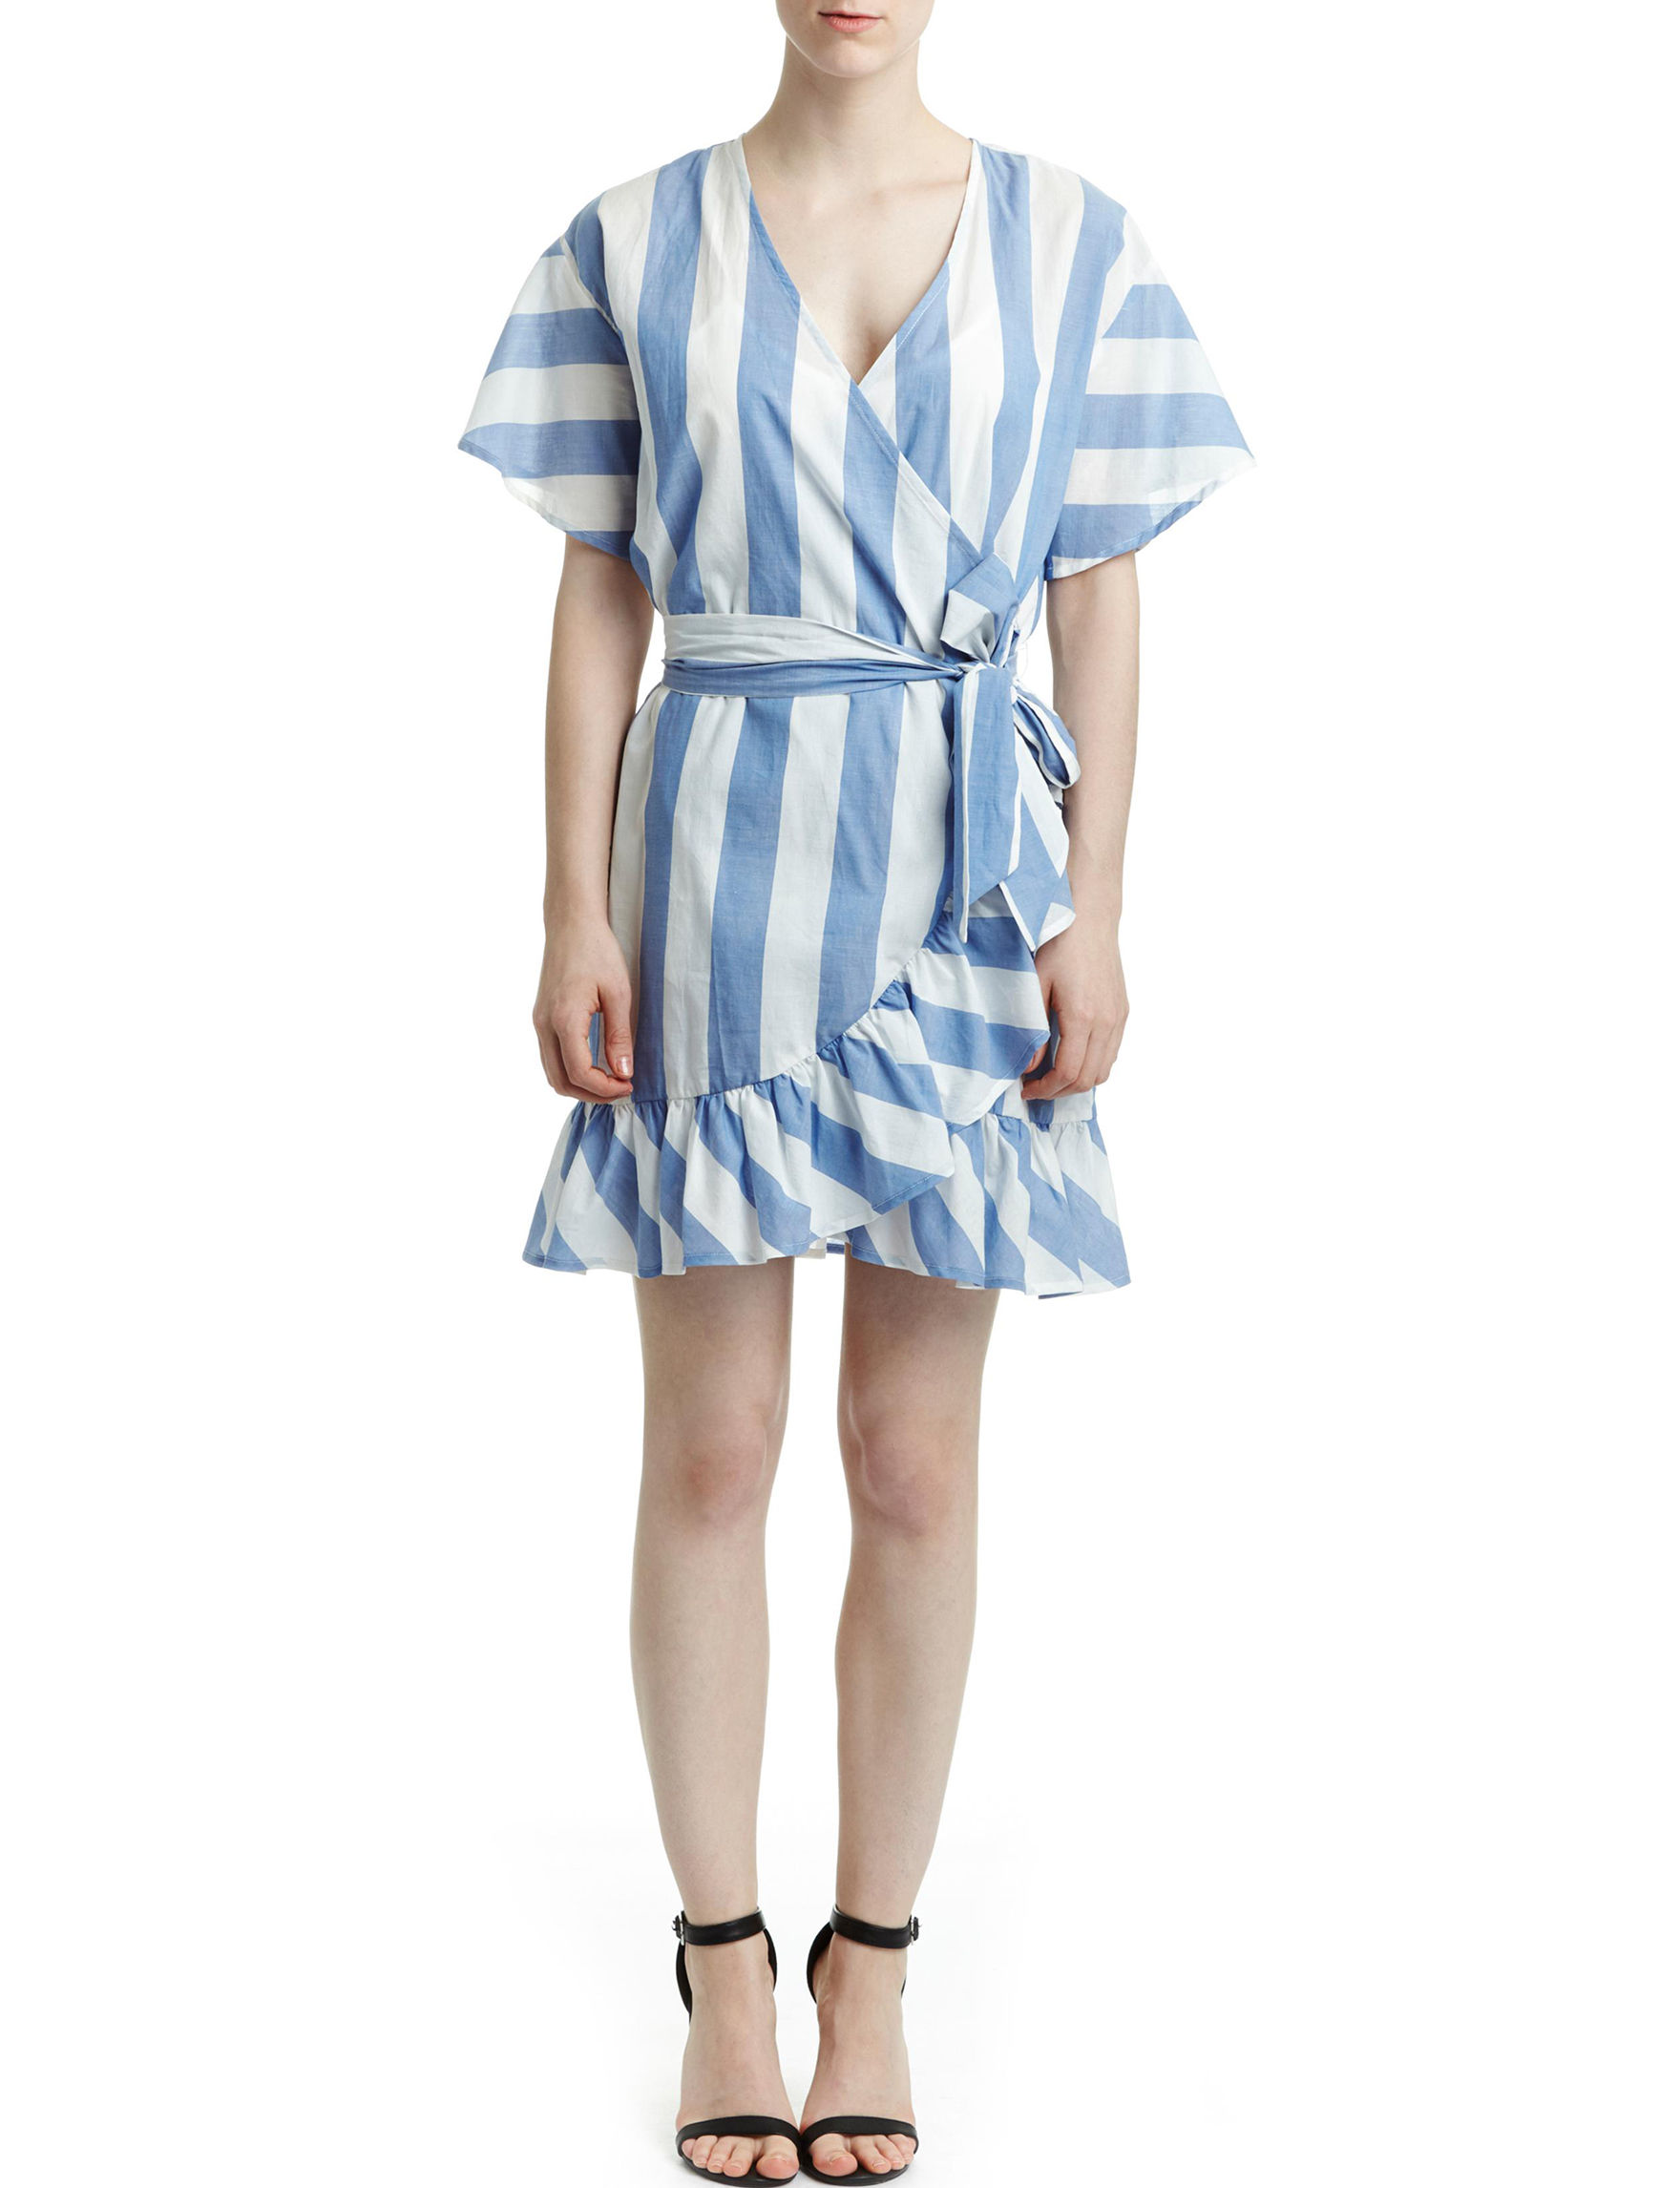 Romeo + Juliet Couture Blue / White Everyday & Casual Fit & Flare Dresses